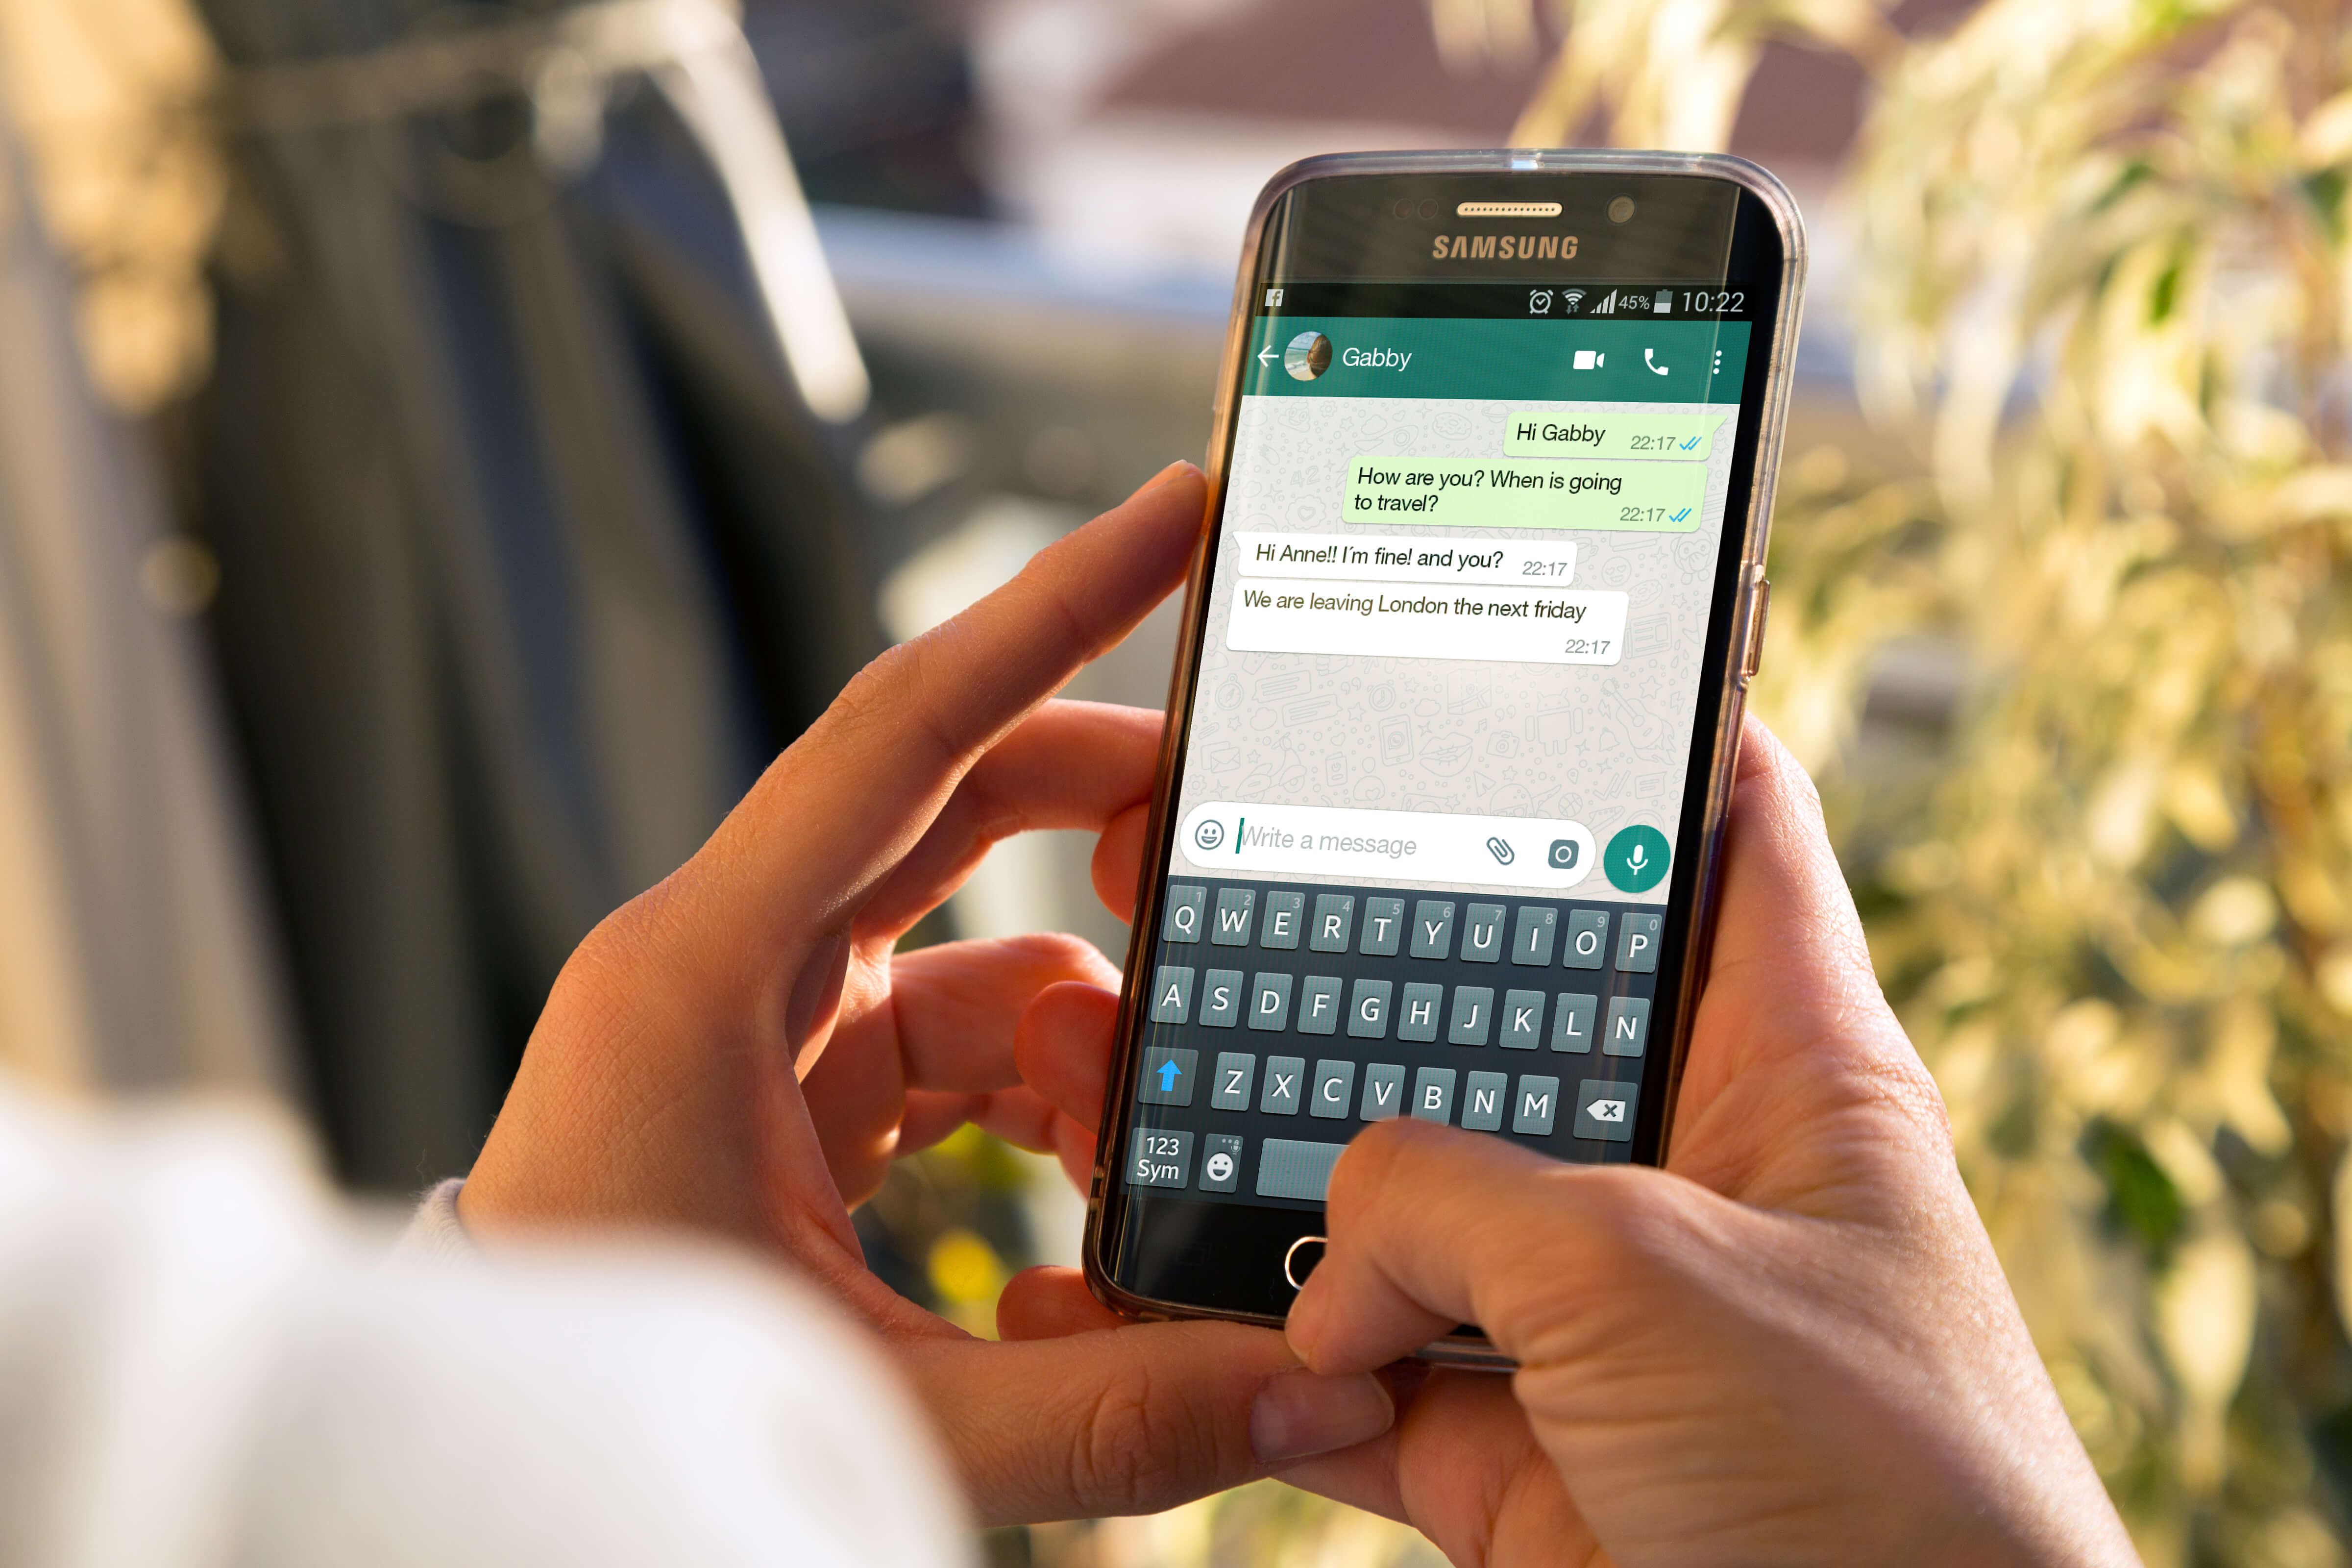 In an effort to curb the spread of fake news and misinformation, WhatsApp has rolled out limits on its message forwarding feature. Source: Shutterstock